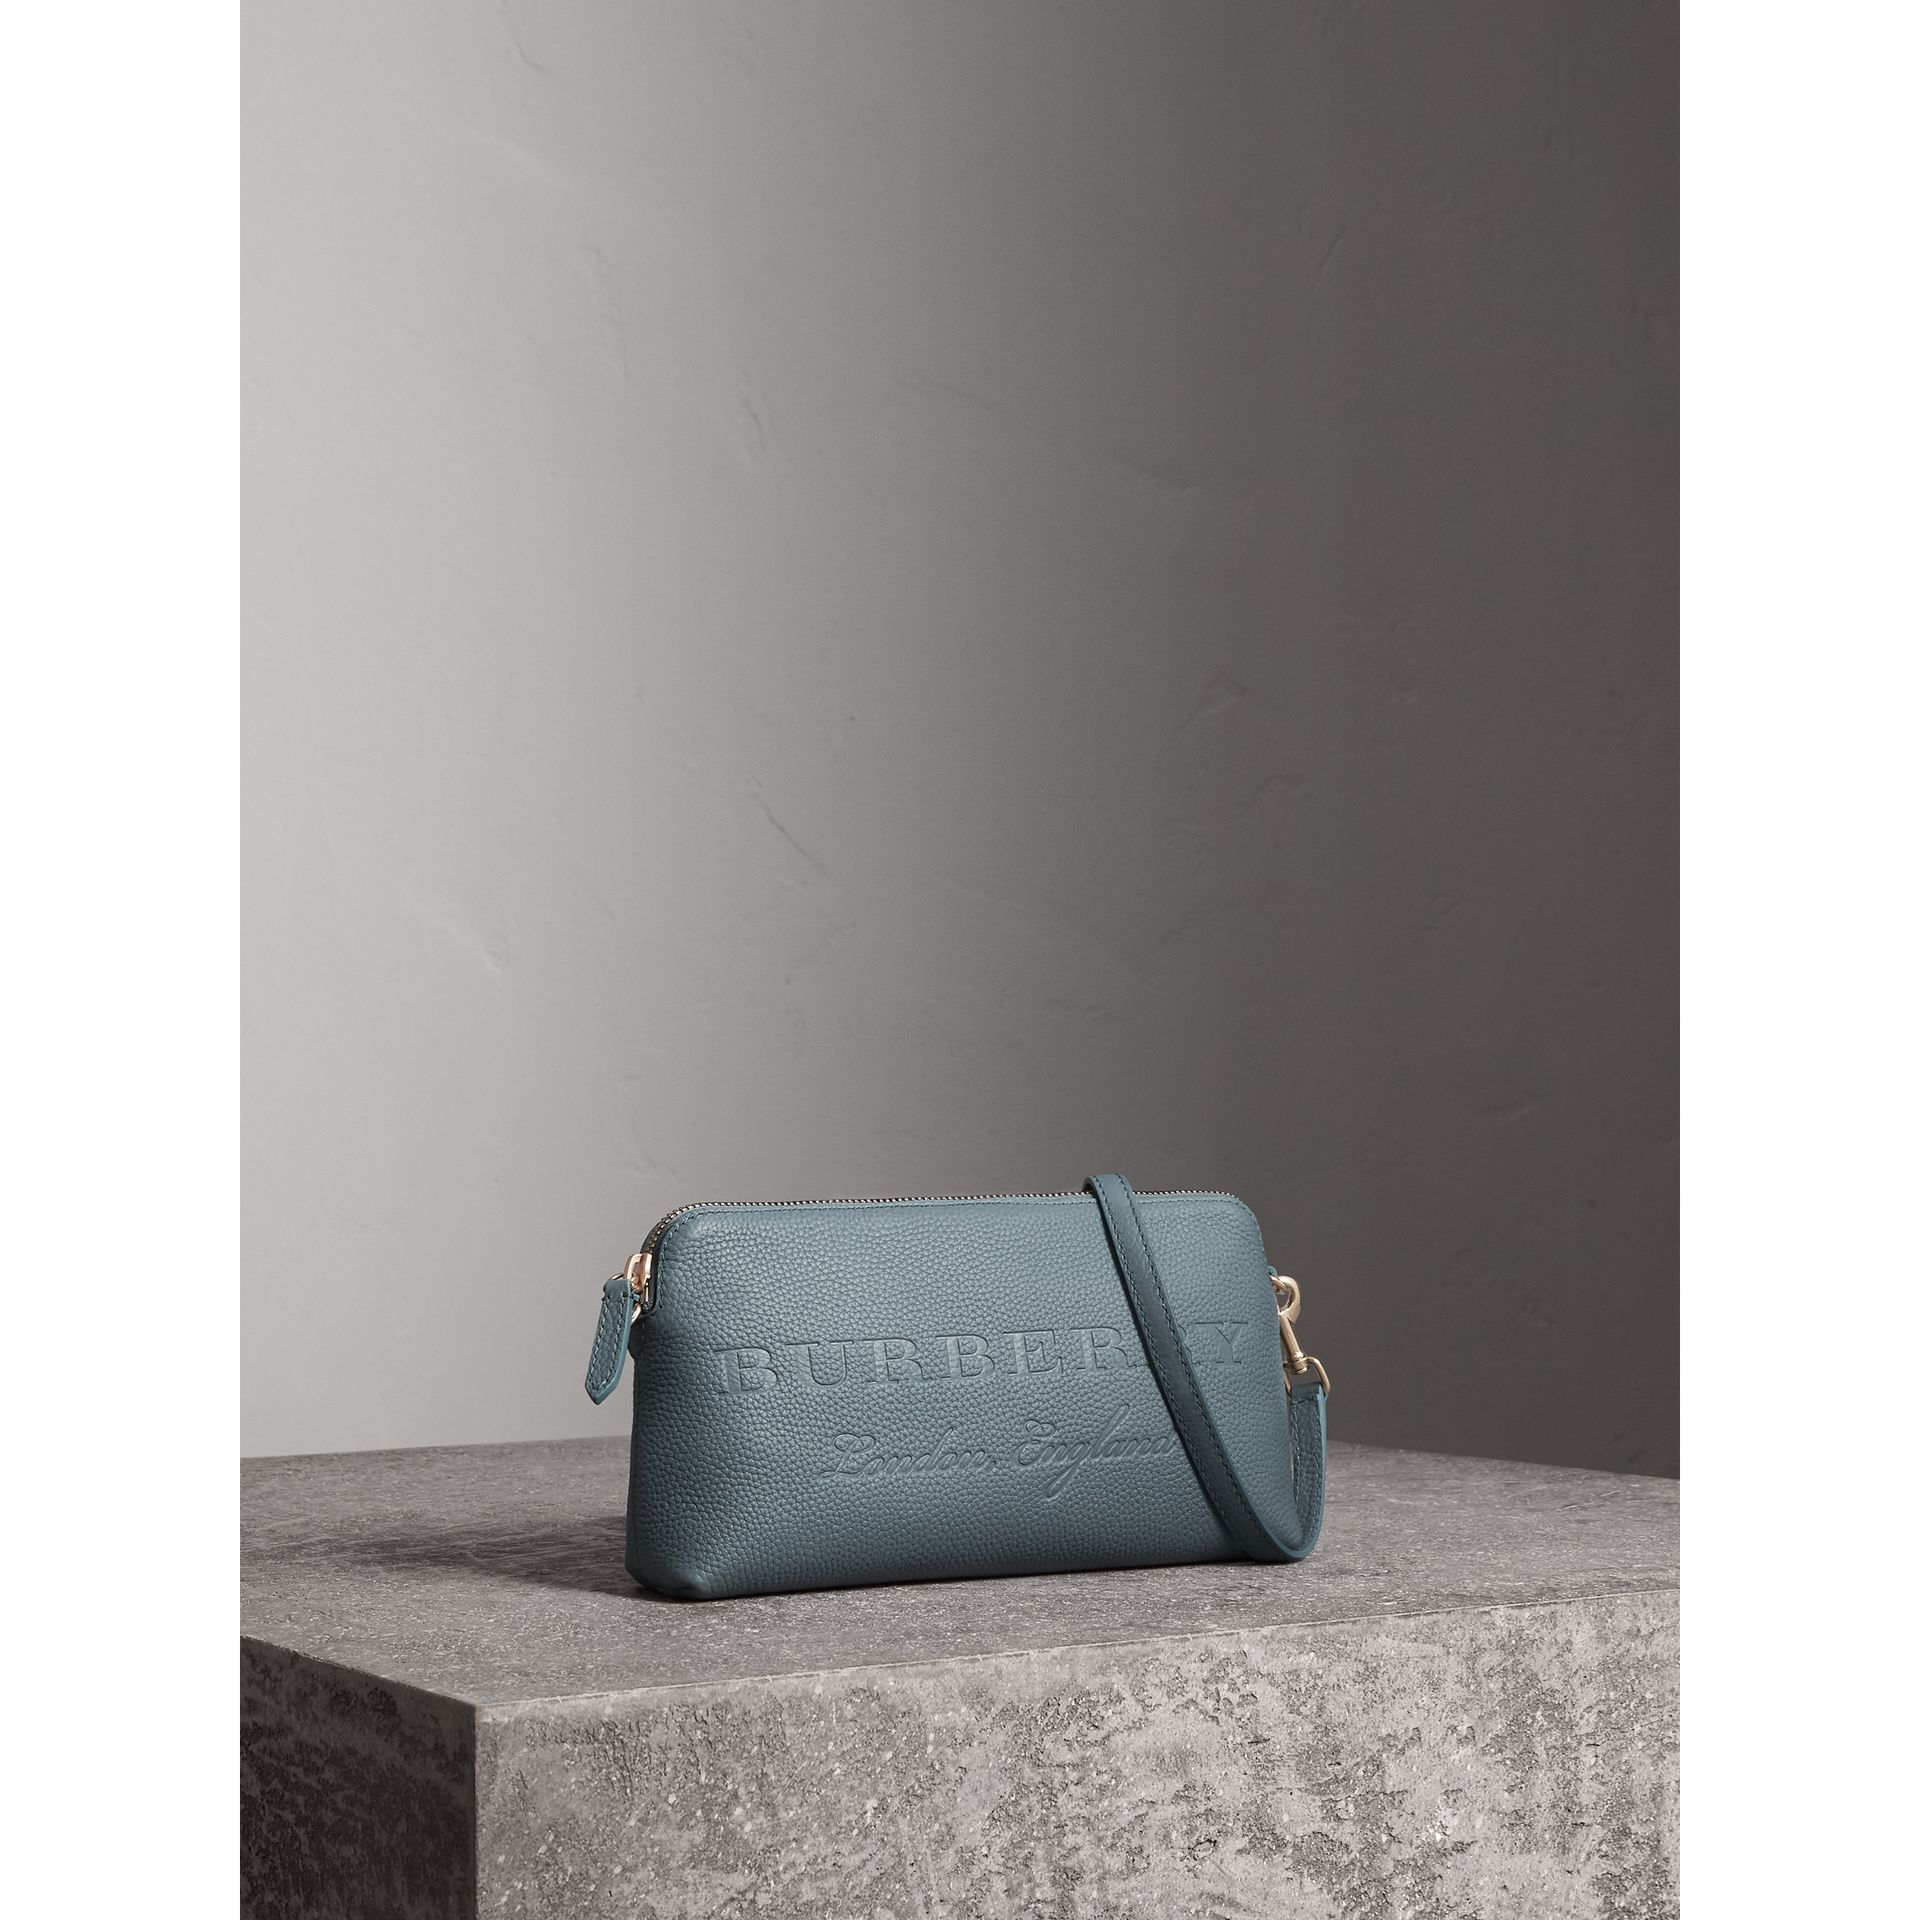 Embossed Leather Clutch Bag in Dusty Teal Blue - Women | Burberry Canada - gallery image 7